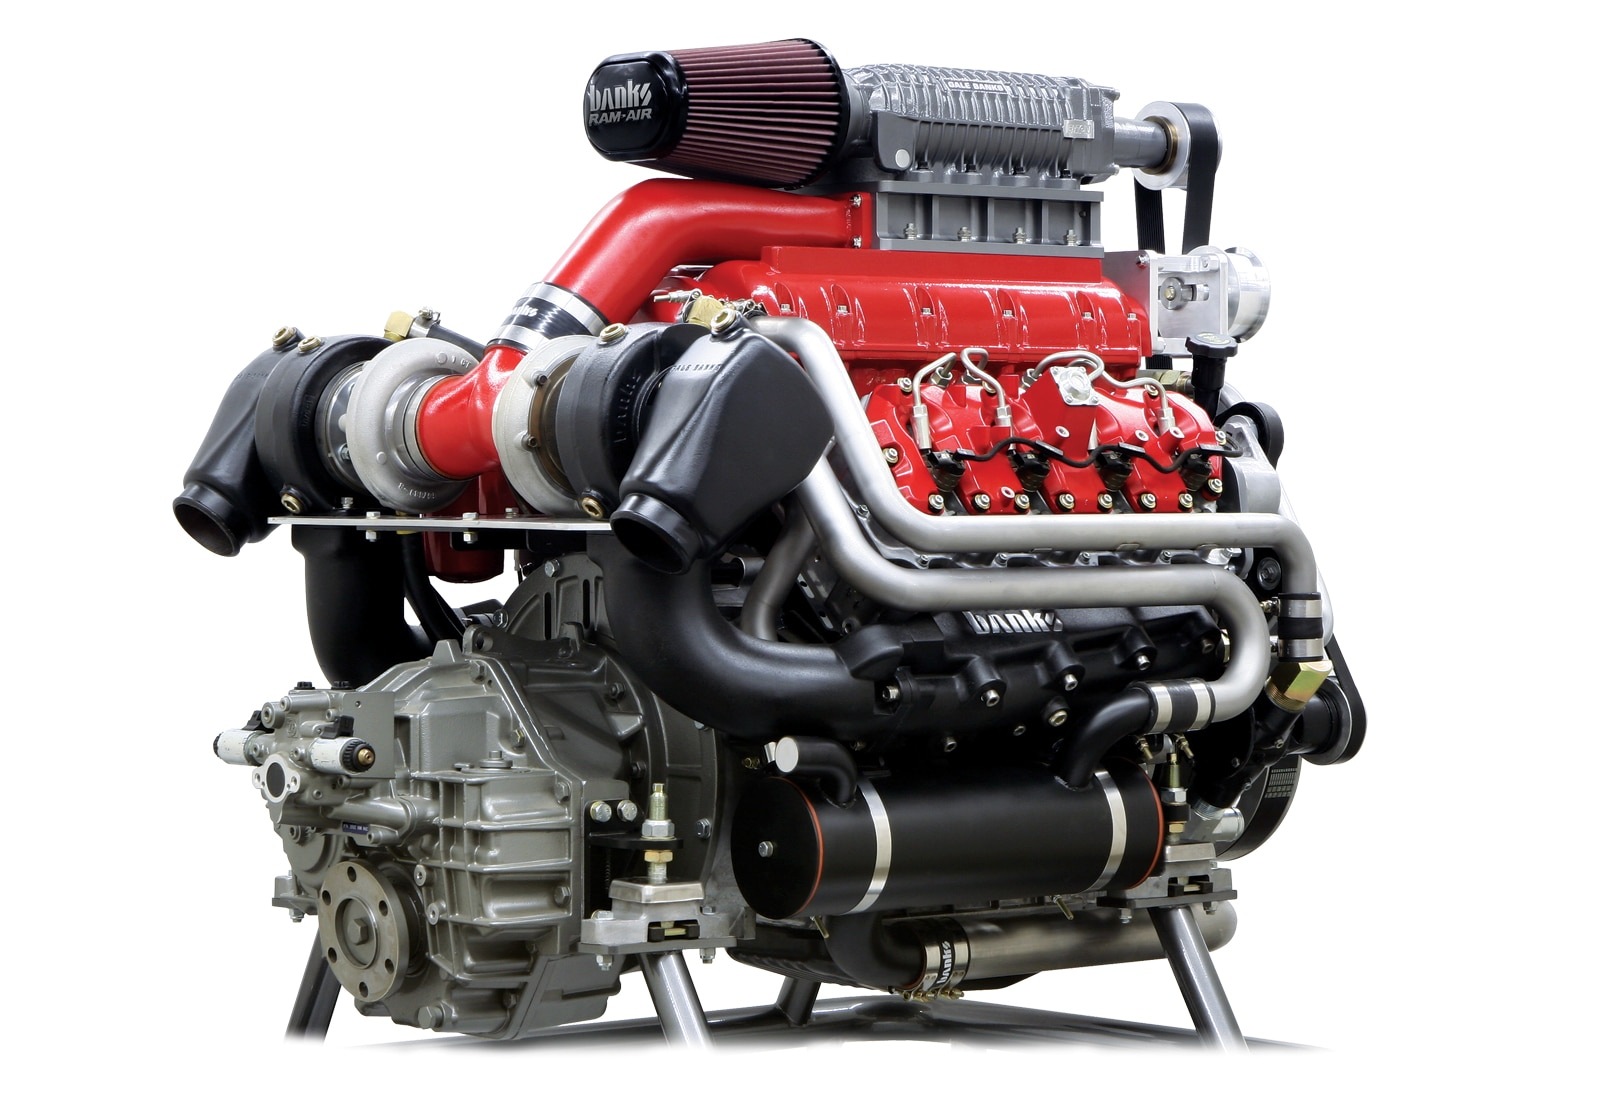 6 6l duramax diesel engine right front angle [ 1600 x 1100 Pixel ]